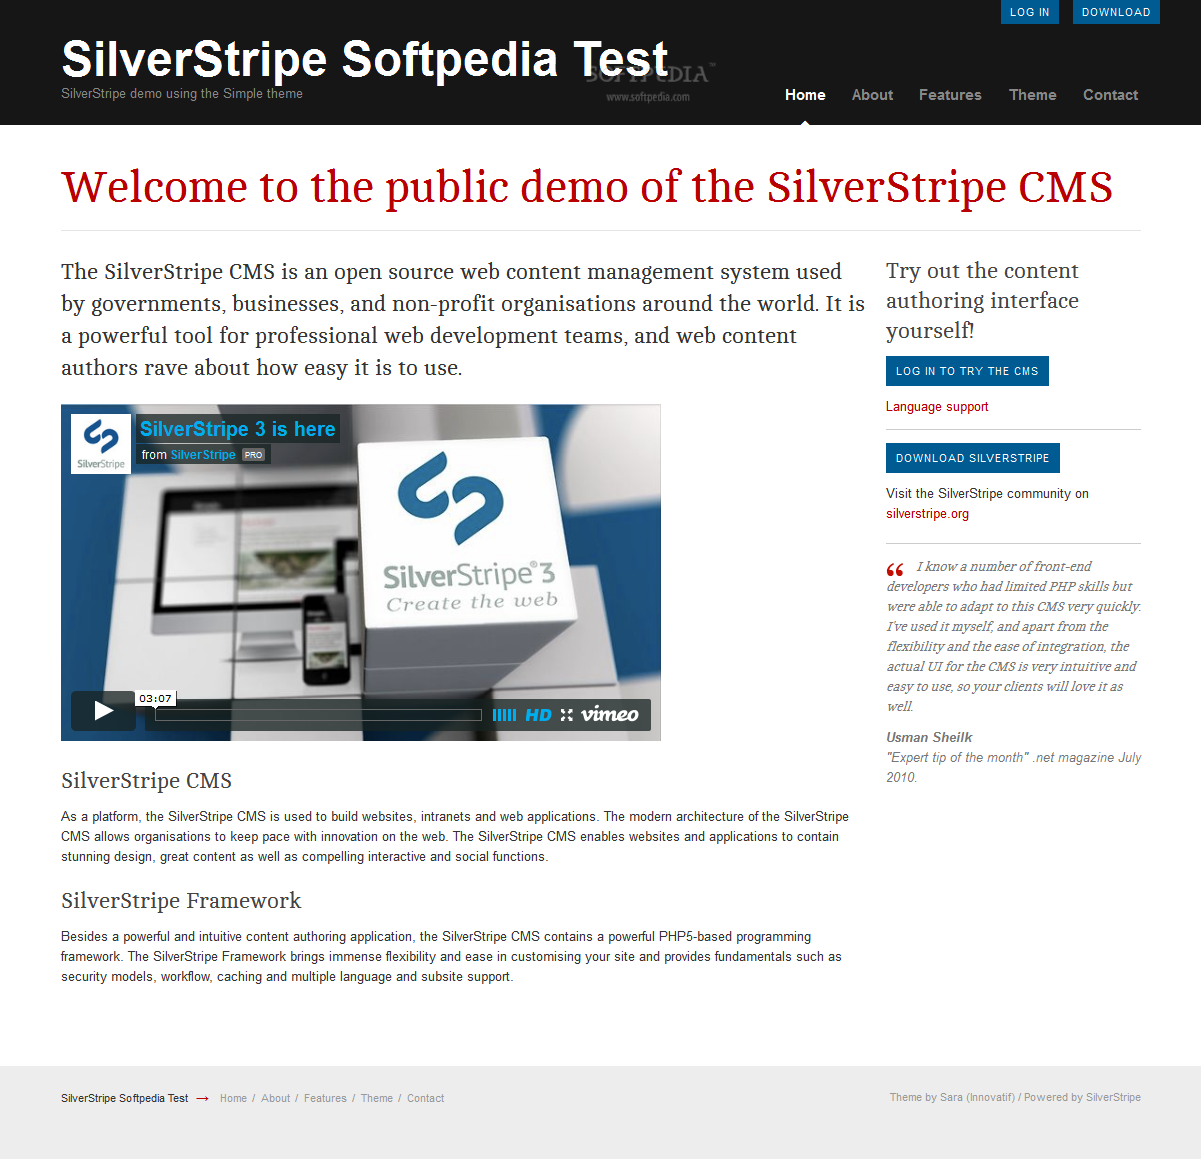 SilverStripe - A default theme is included with any SilverStripe distribution